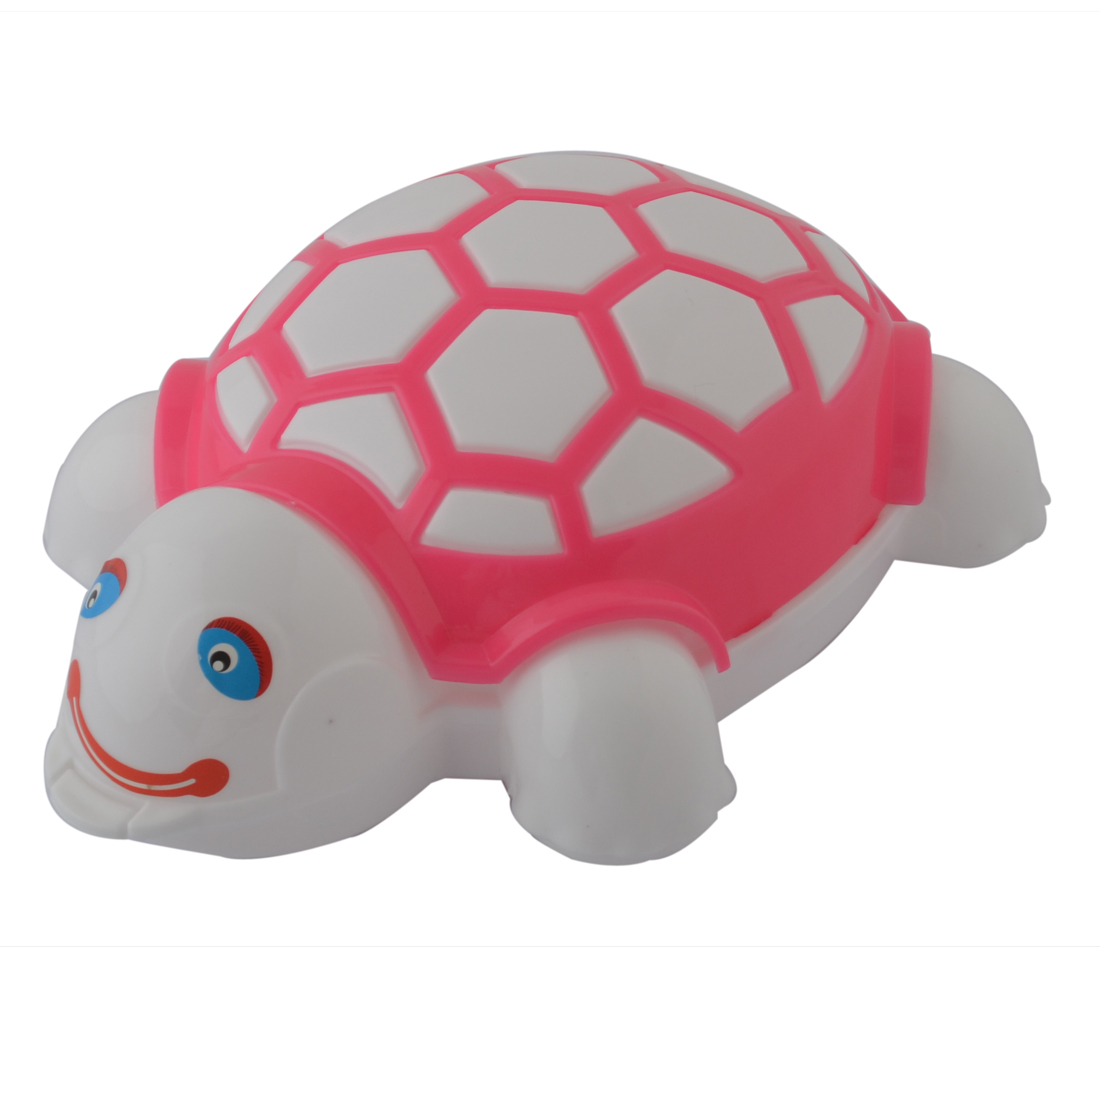 Houseware Tortoise Shaped Plastic Washing Cleaning Tool Cleaner Scrub Brush Pink White